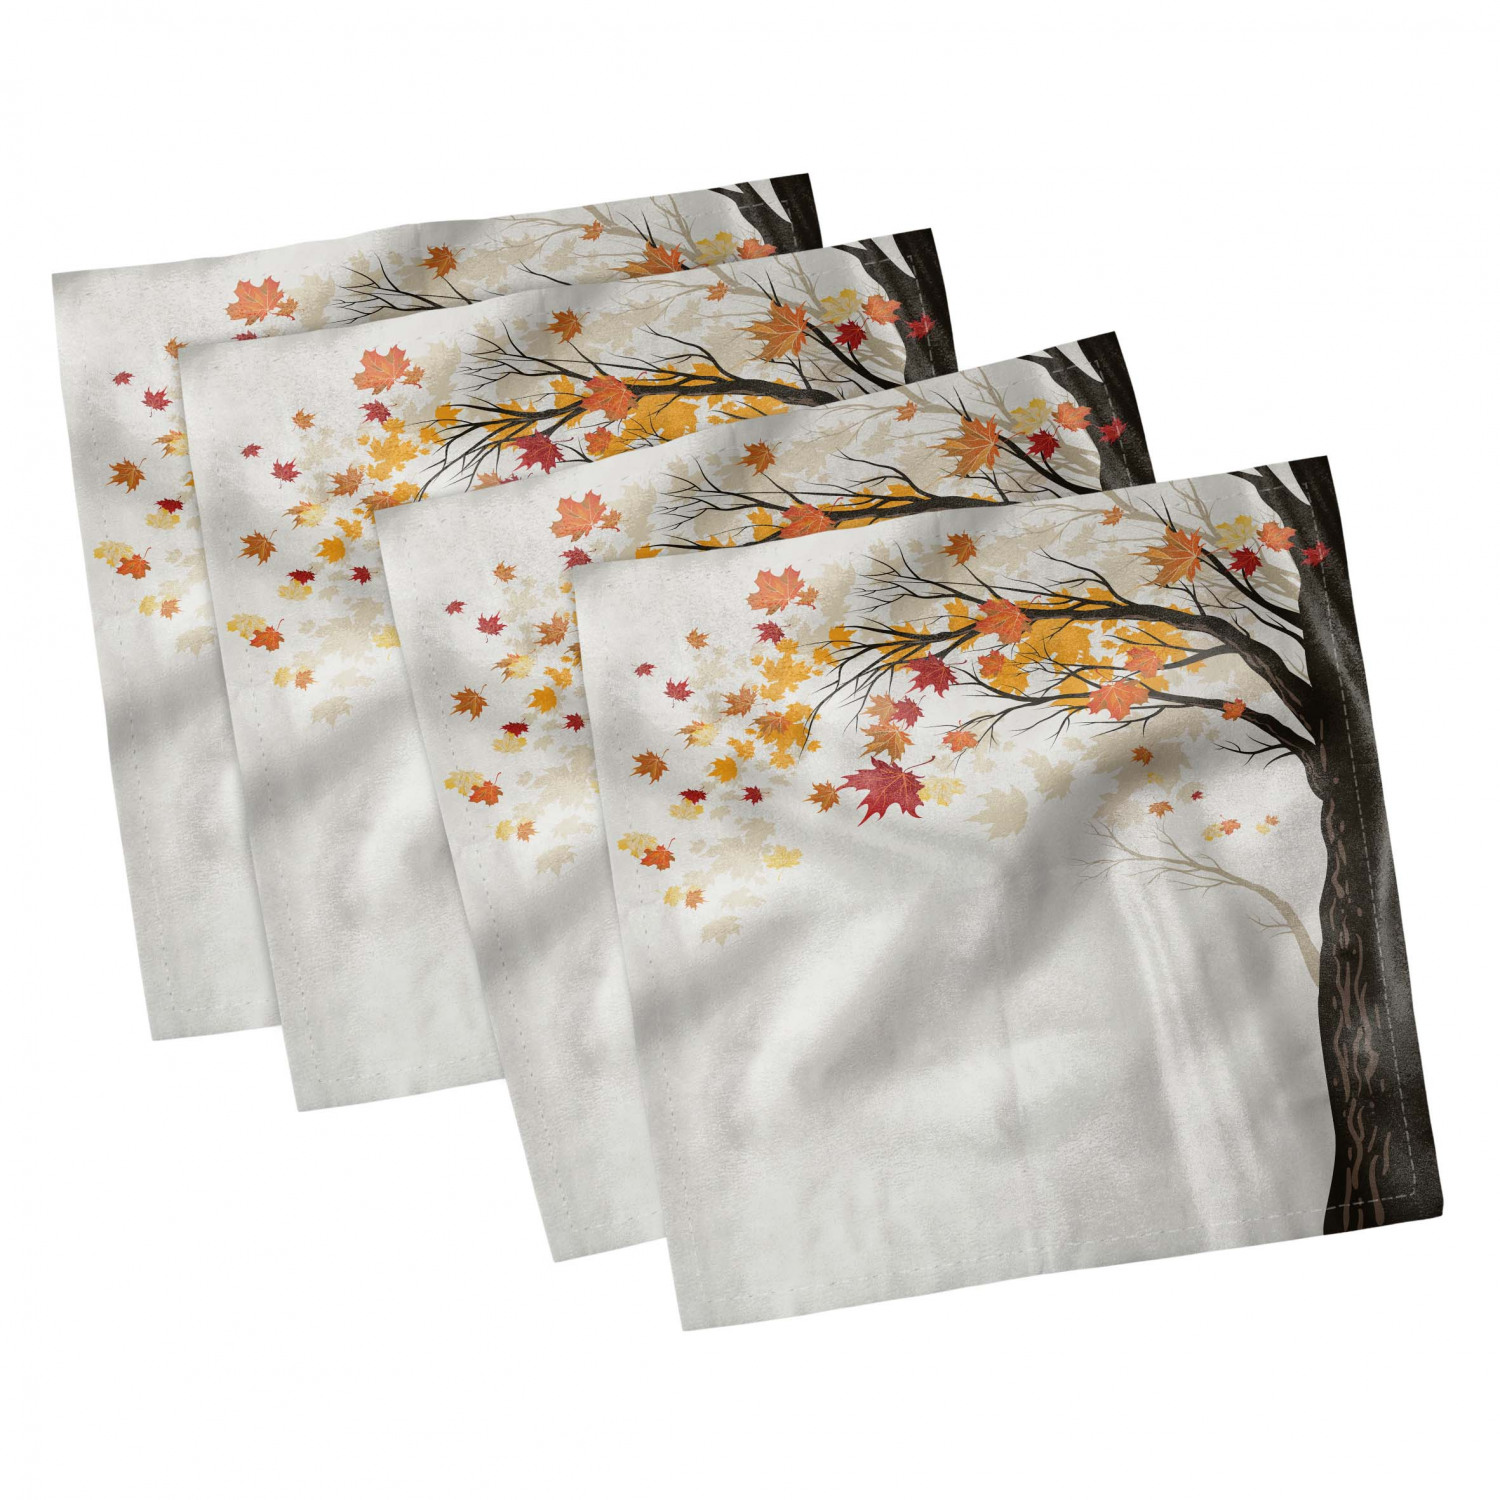 thumbnail 99 - Ambesonne Autumn Fall Decorative Satin Napkins Set of 4 Party Dinner Fabric